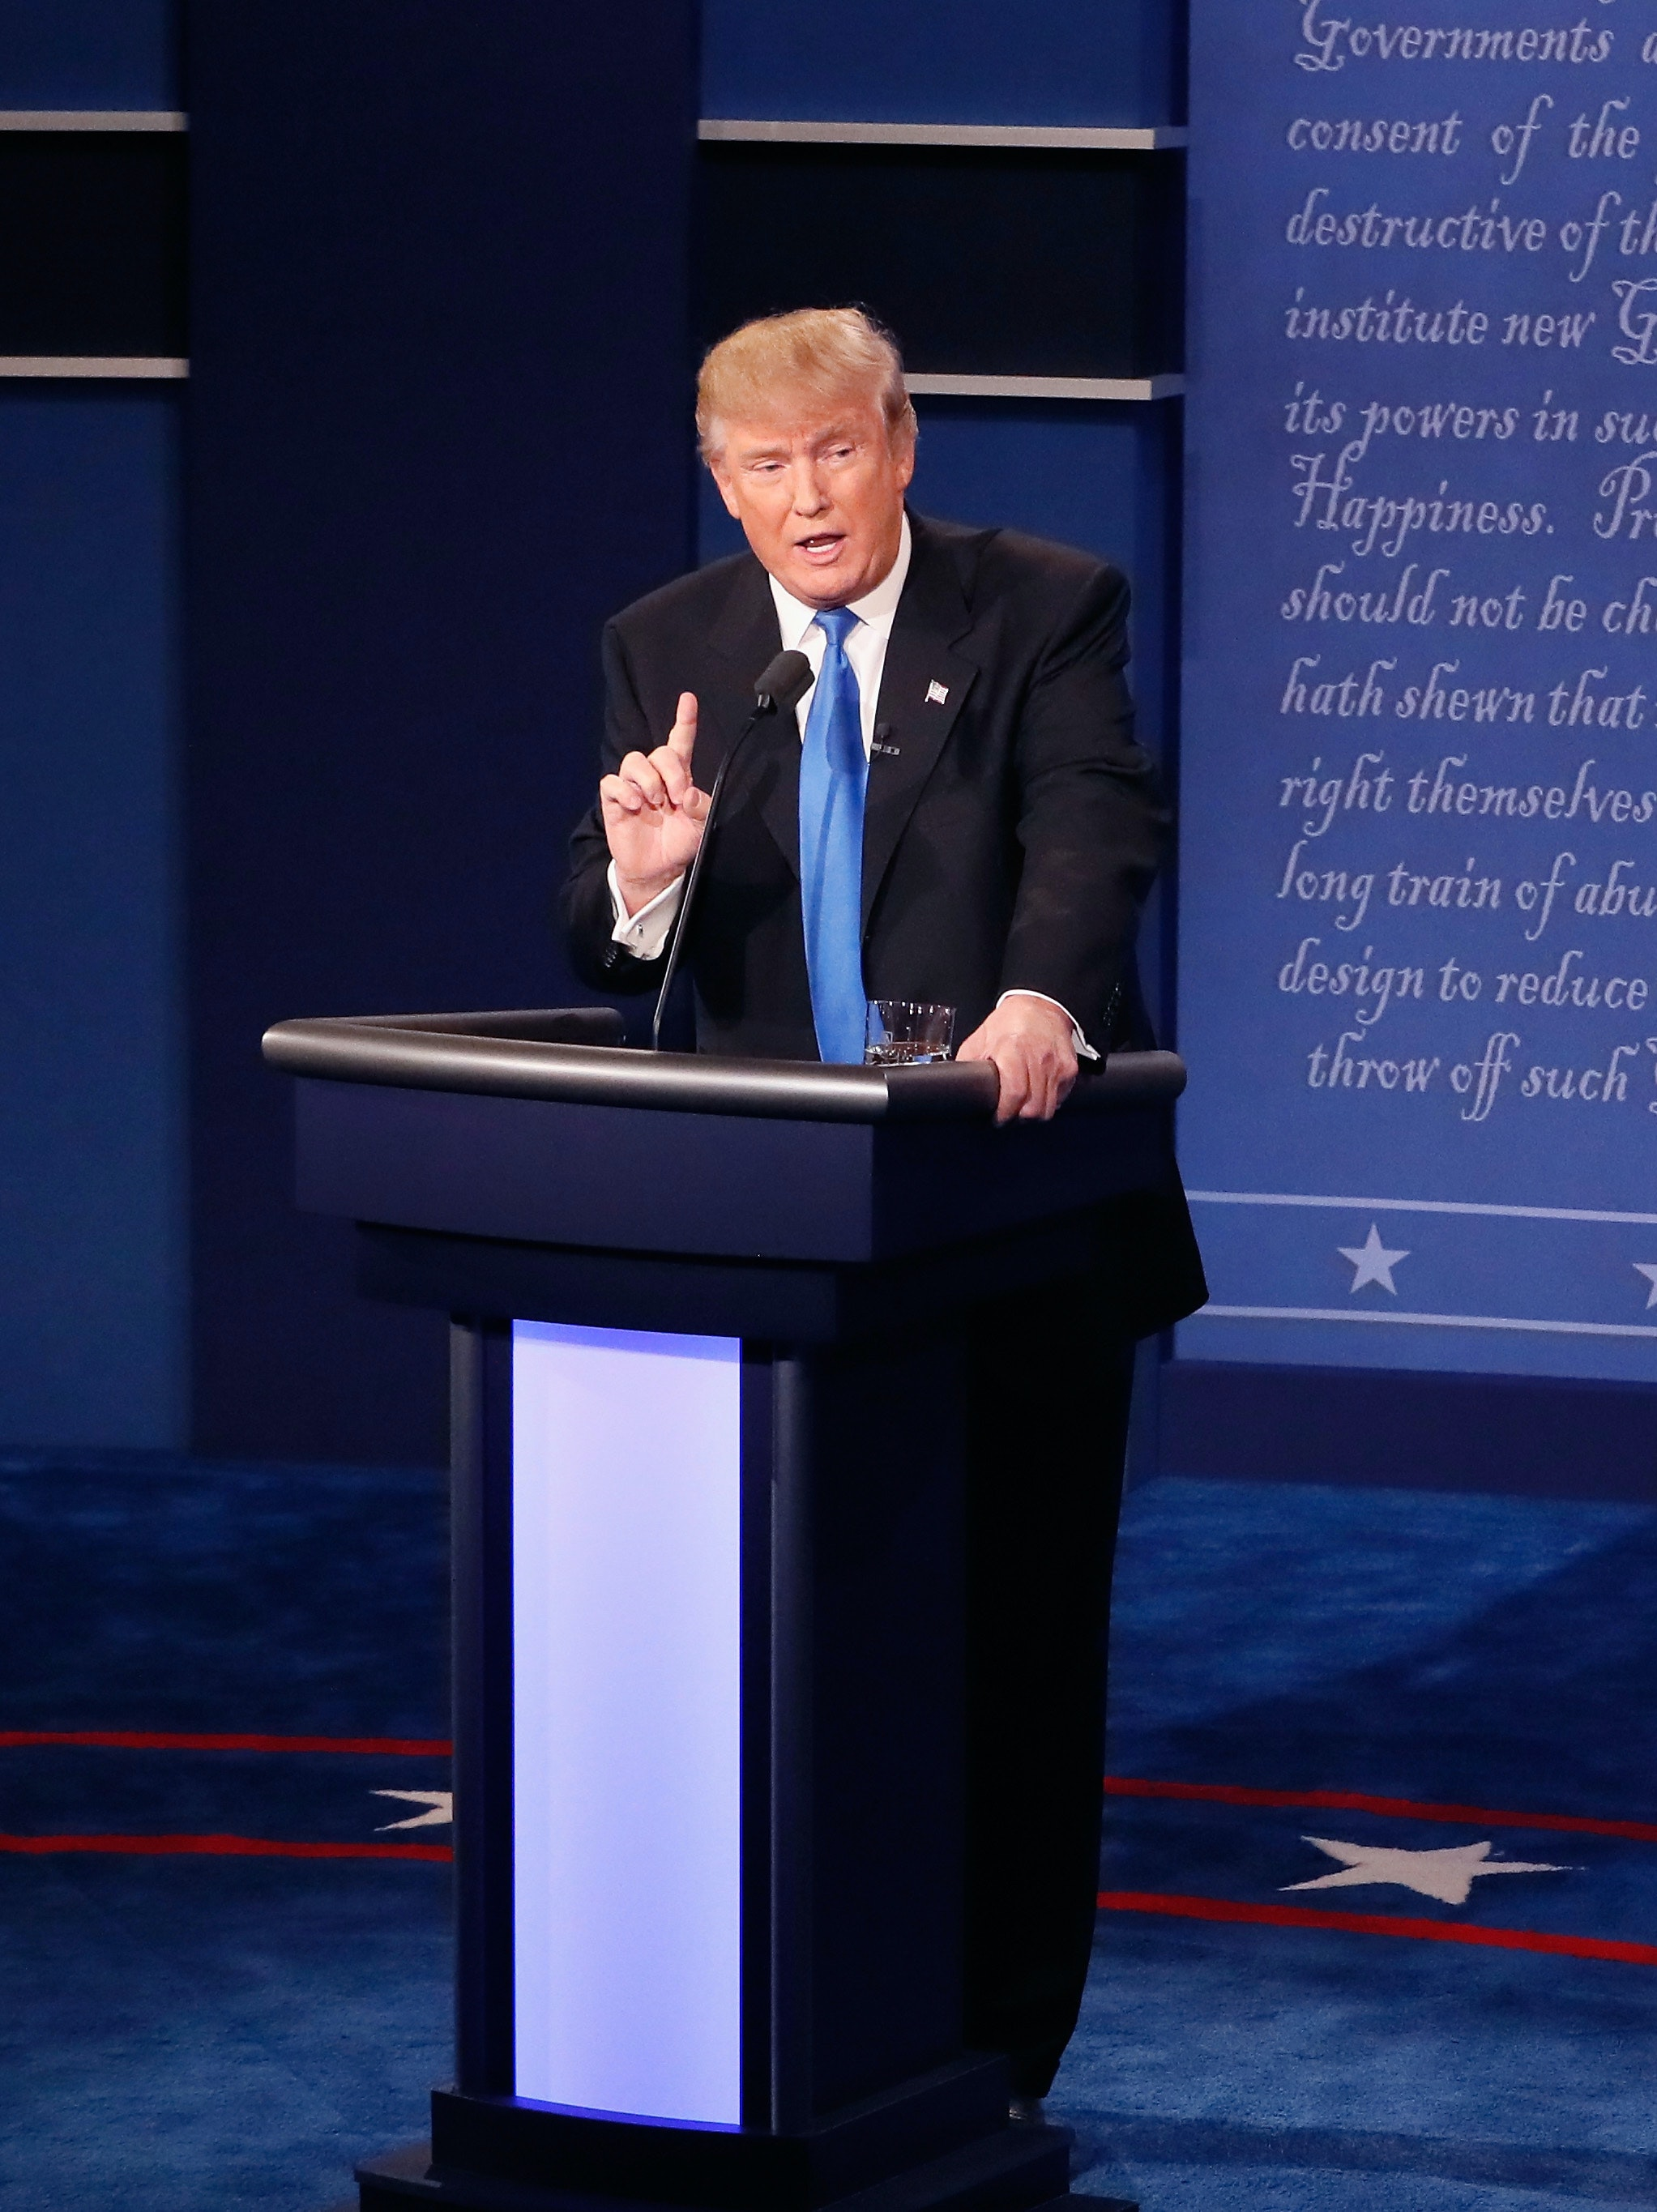 Republican presidential nominee Donald Trump (L) speaks as Democratic presidential nominee Hillary Clinton listens during the Presidential Debate at Hofstra University on September 26, 2016 in Hempstead, New York. The first of four debates for the 2016 Election, three Presidential and one Vice Presidential, is moderated by NBC's Lester Holt.